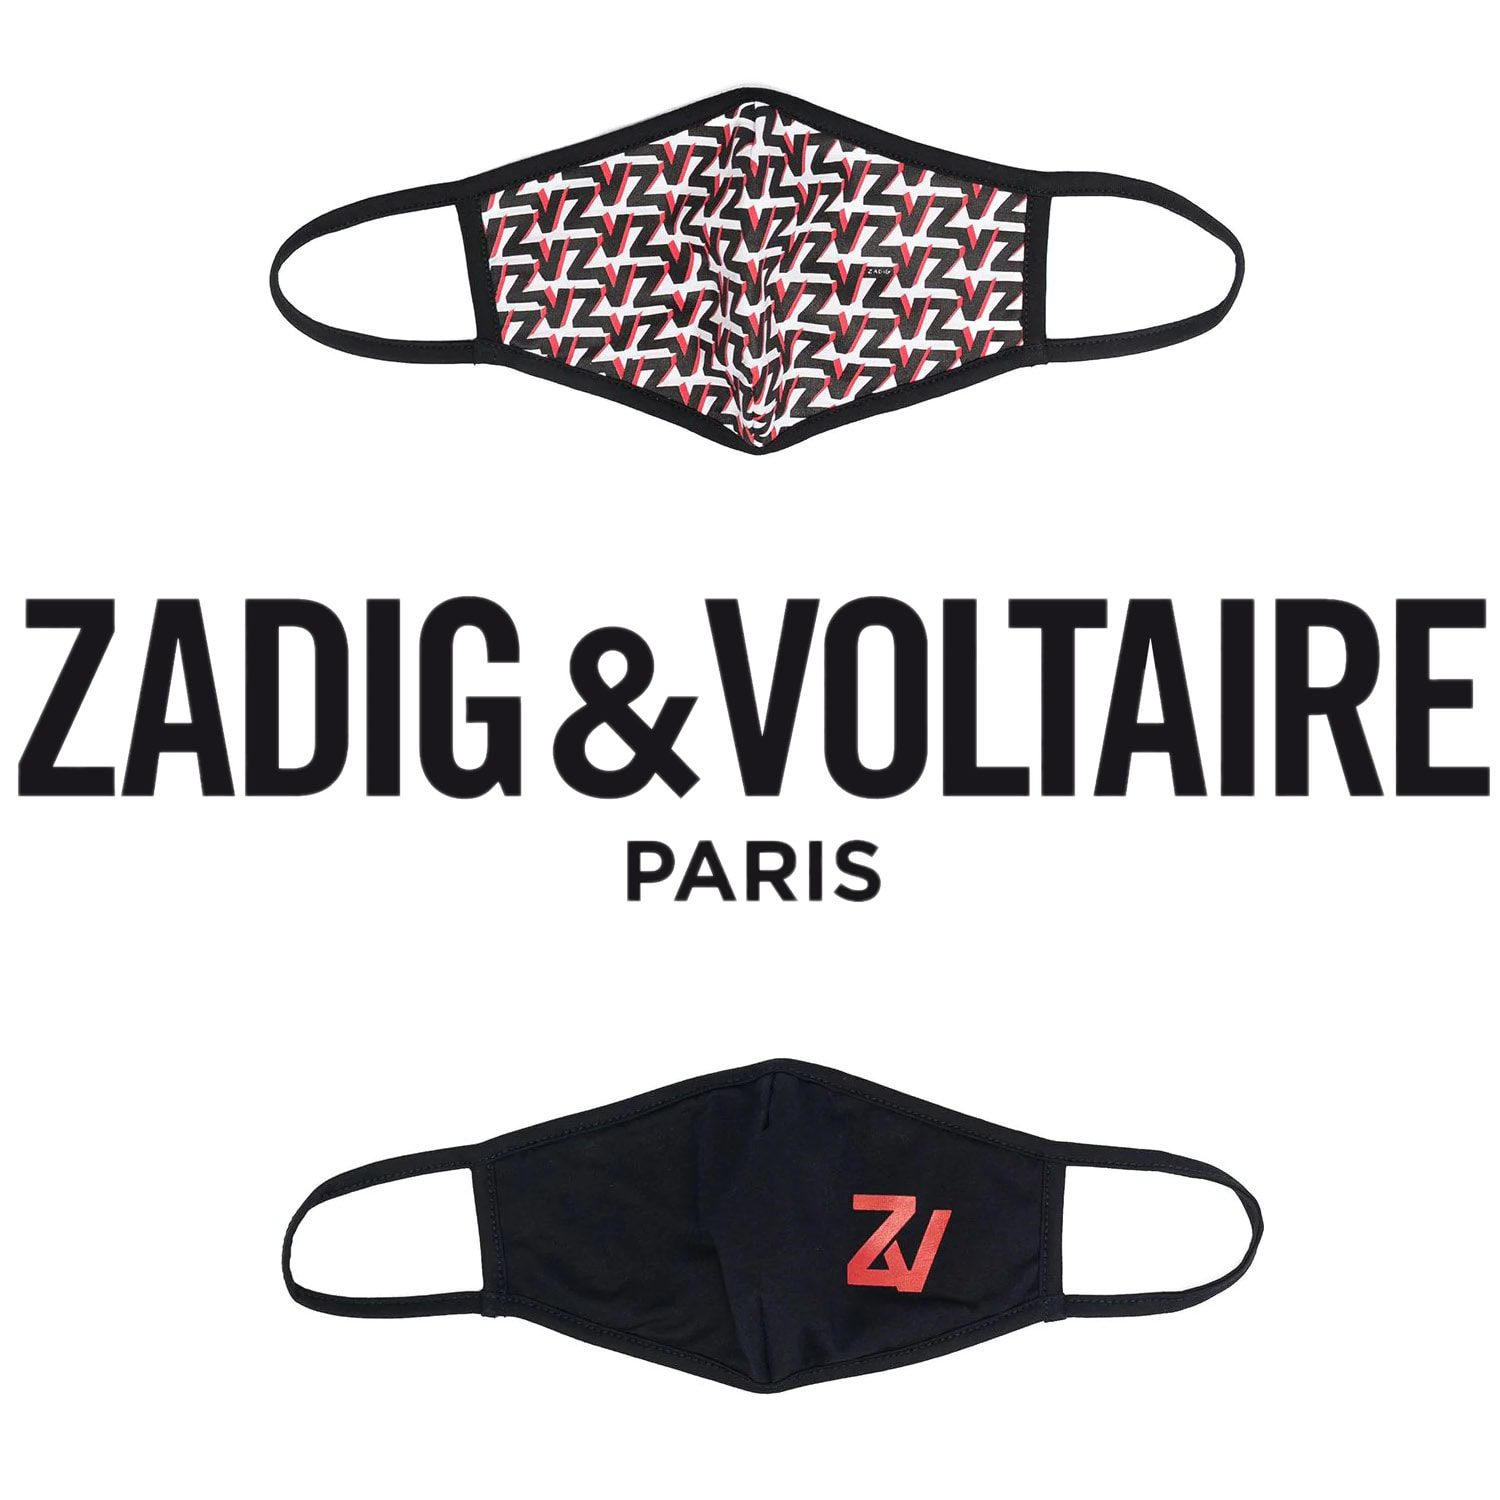 Zadig & Voltaire Protective Face Mask 2021 by RUNWAY MAGAZINE